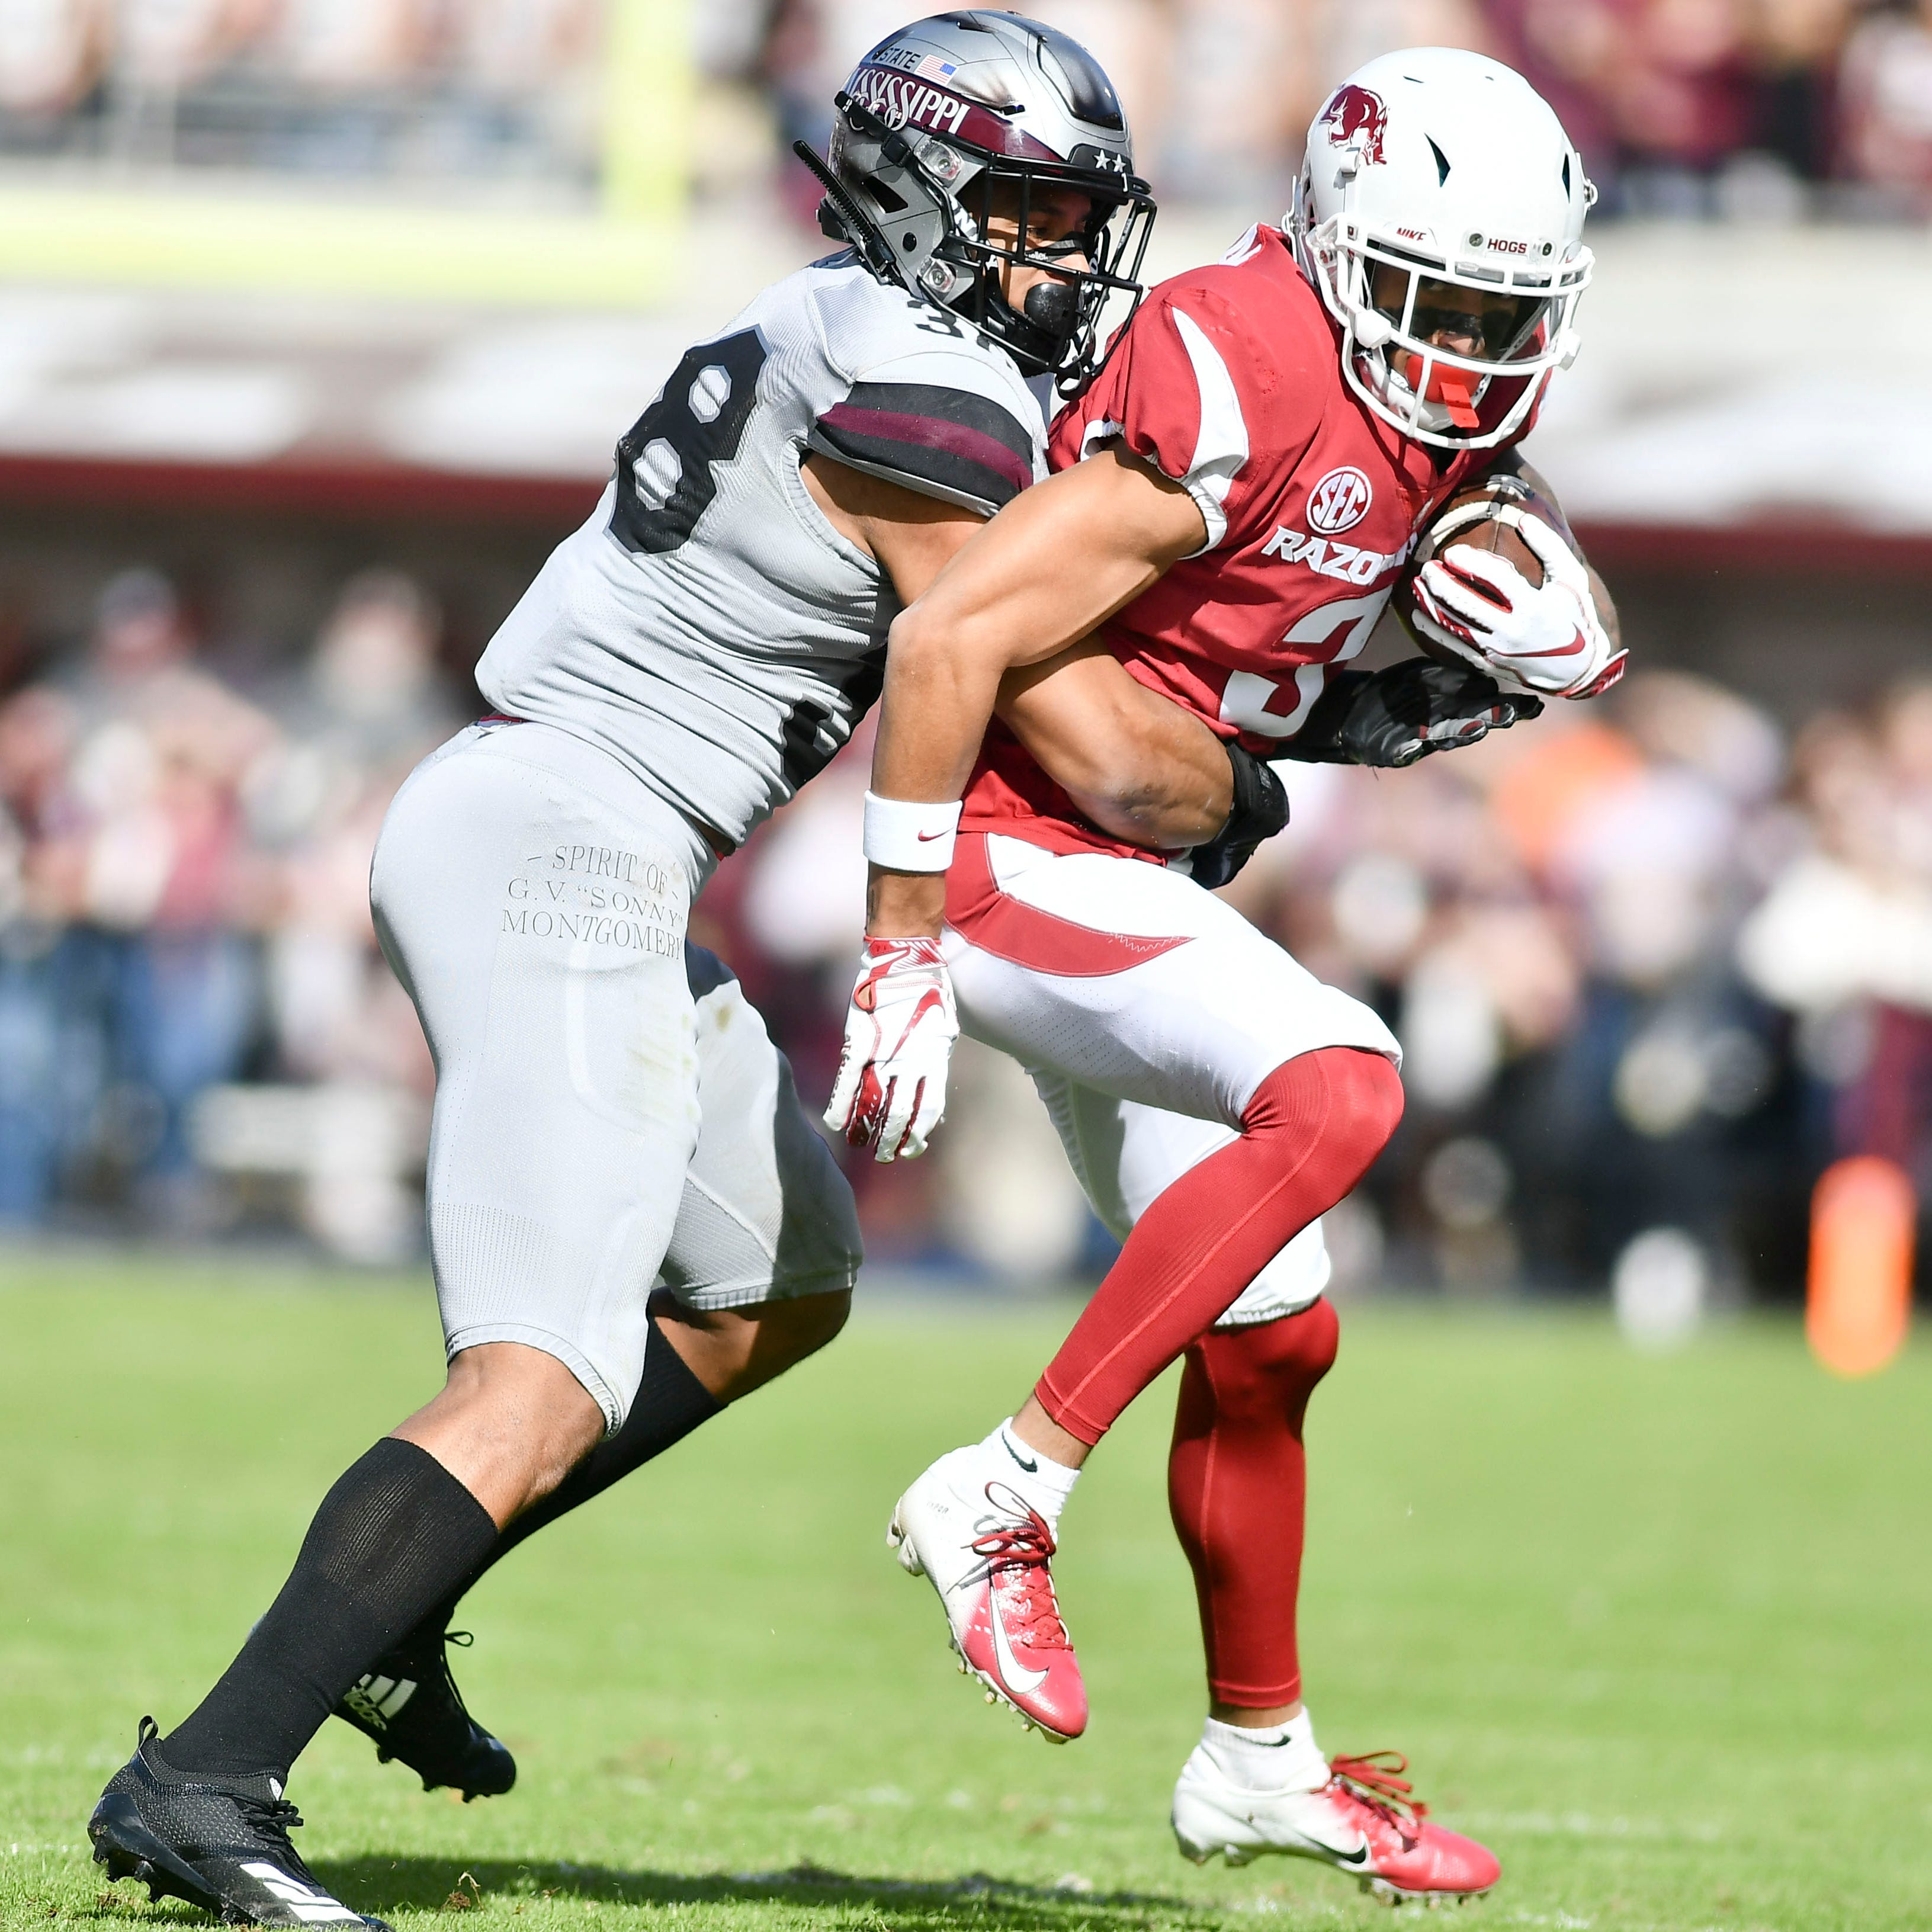 Abram adjusts to STAR safety, shines on Mississippi State senior day